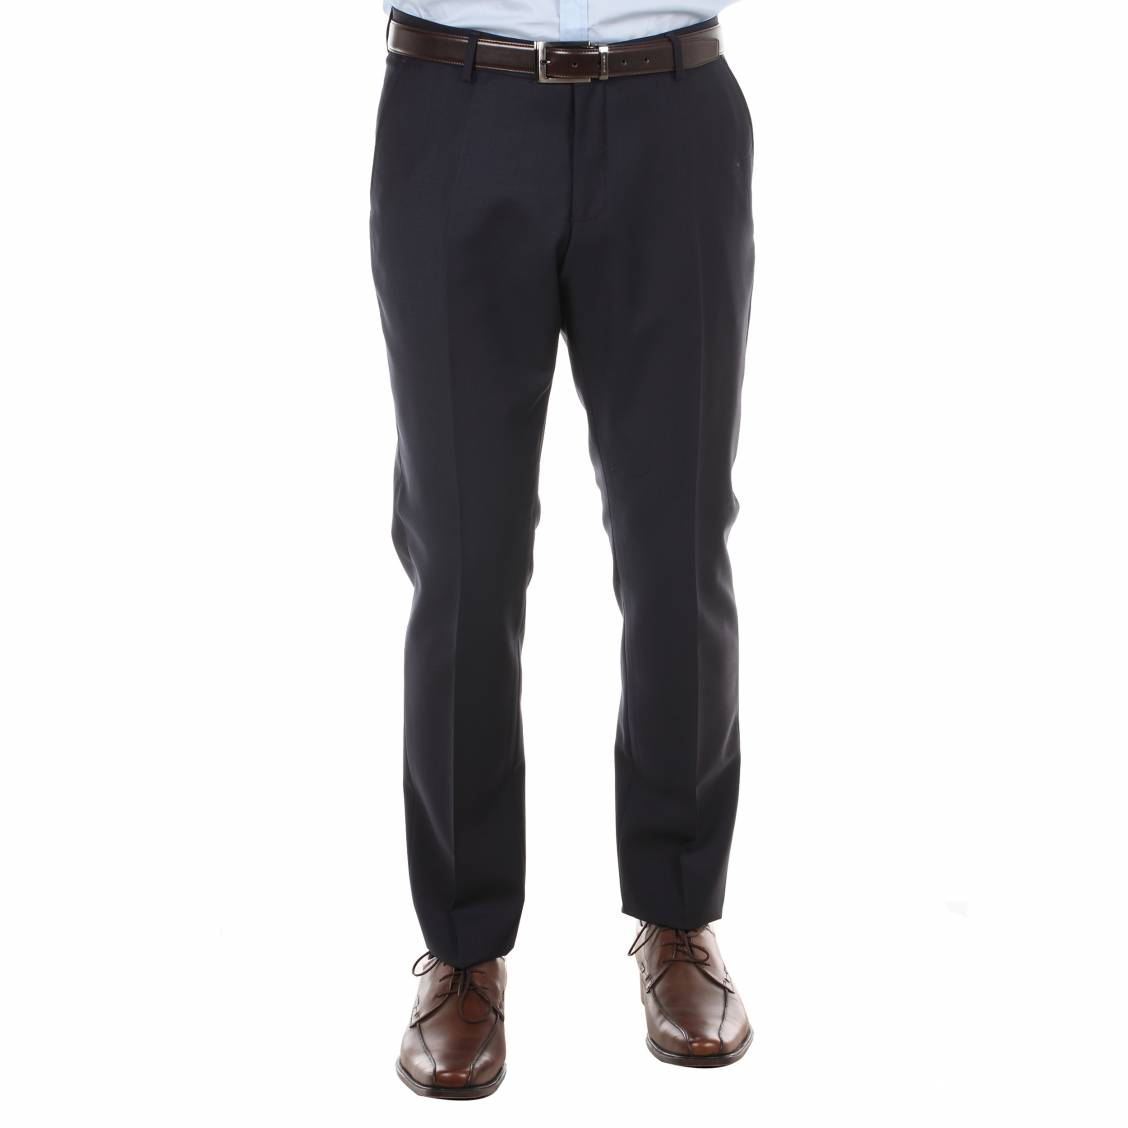 Pantalon de costume cintré selected 100% laine...